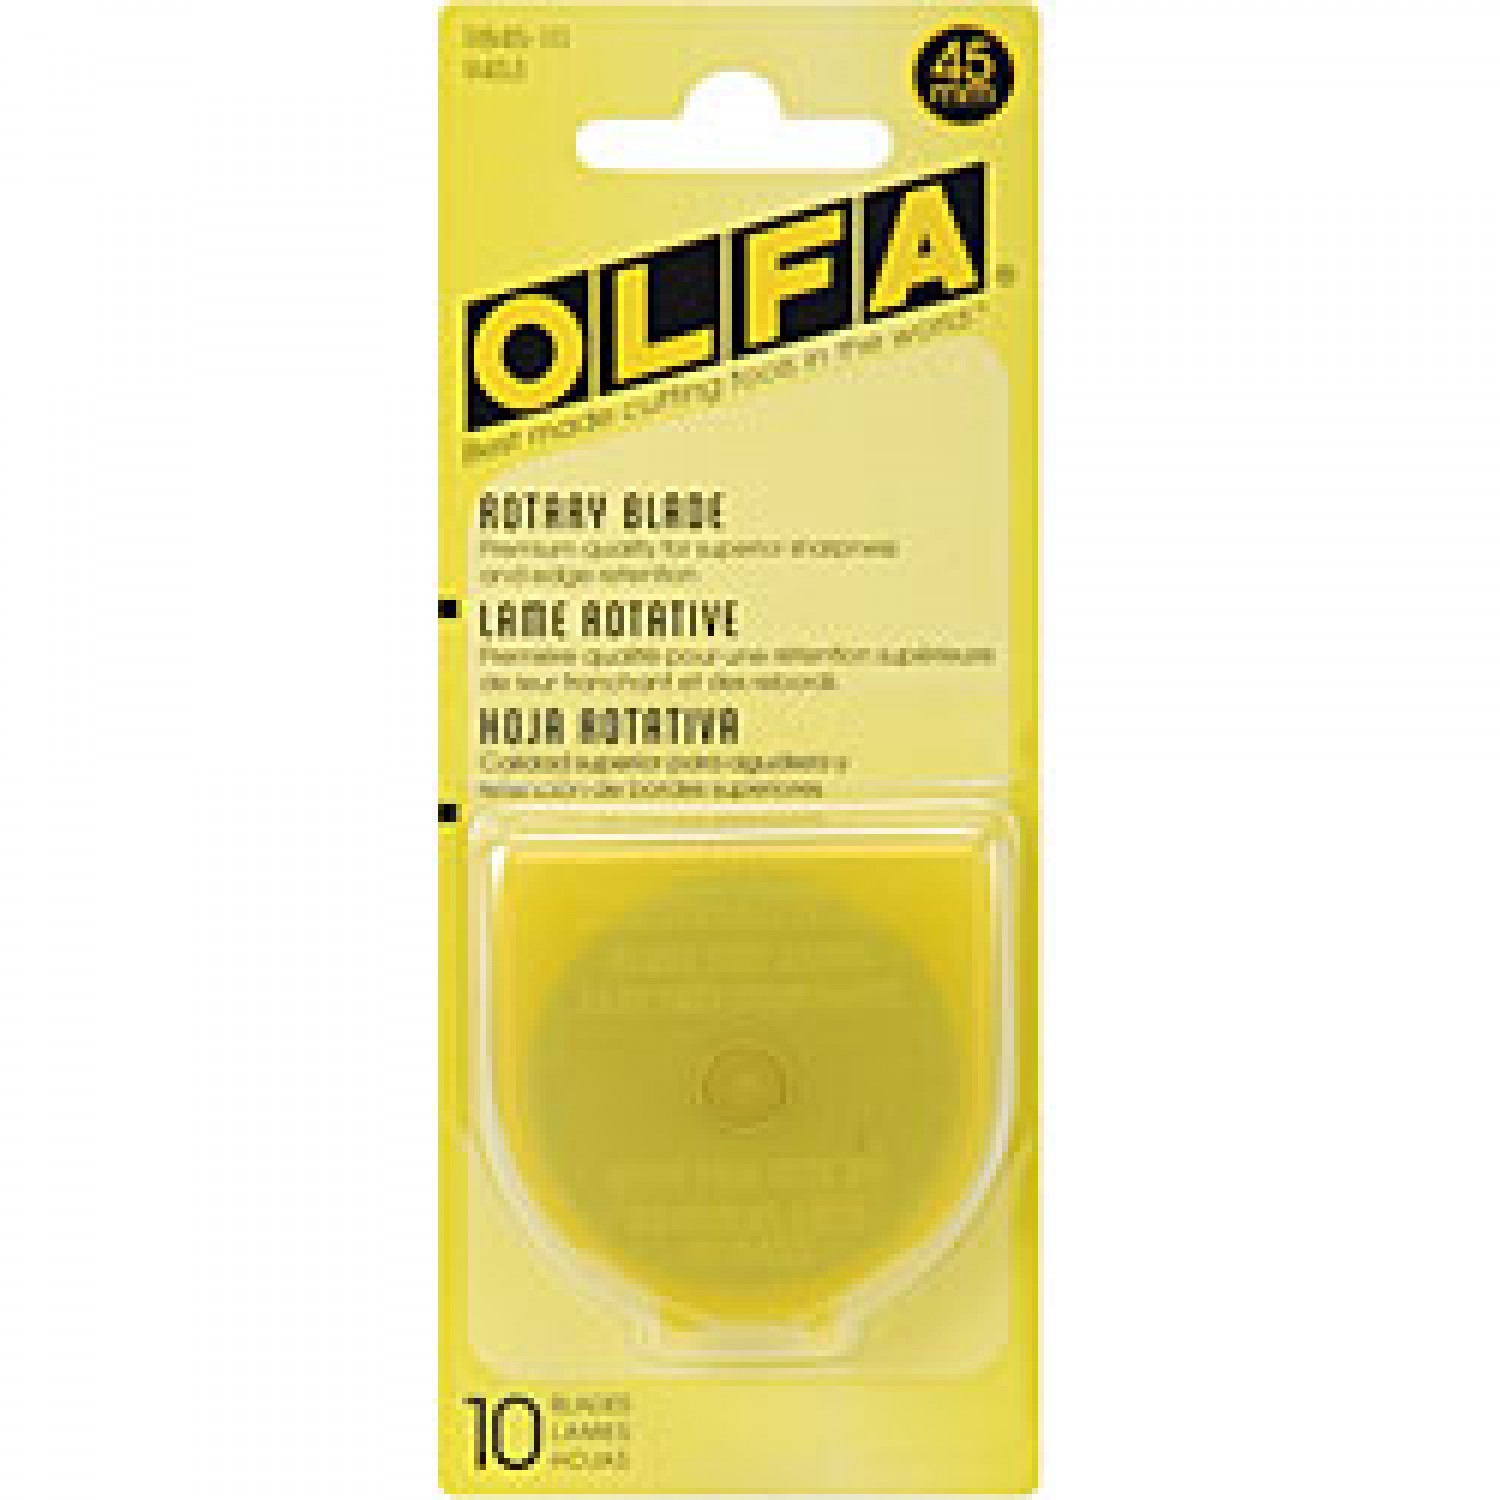 Olfa RB45-10 Rotary Blade 45mm, 10 Pack